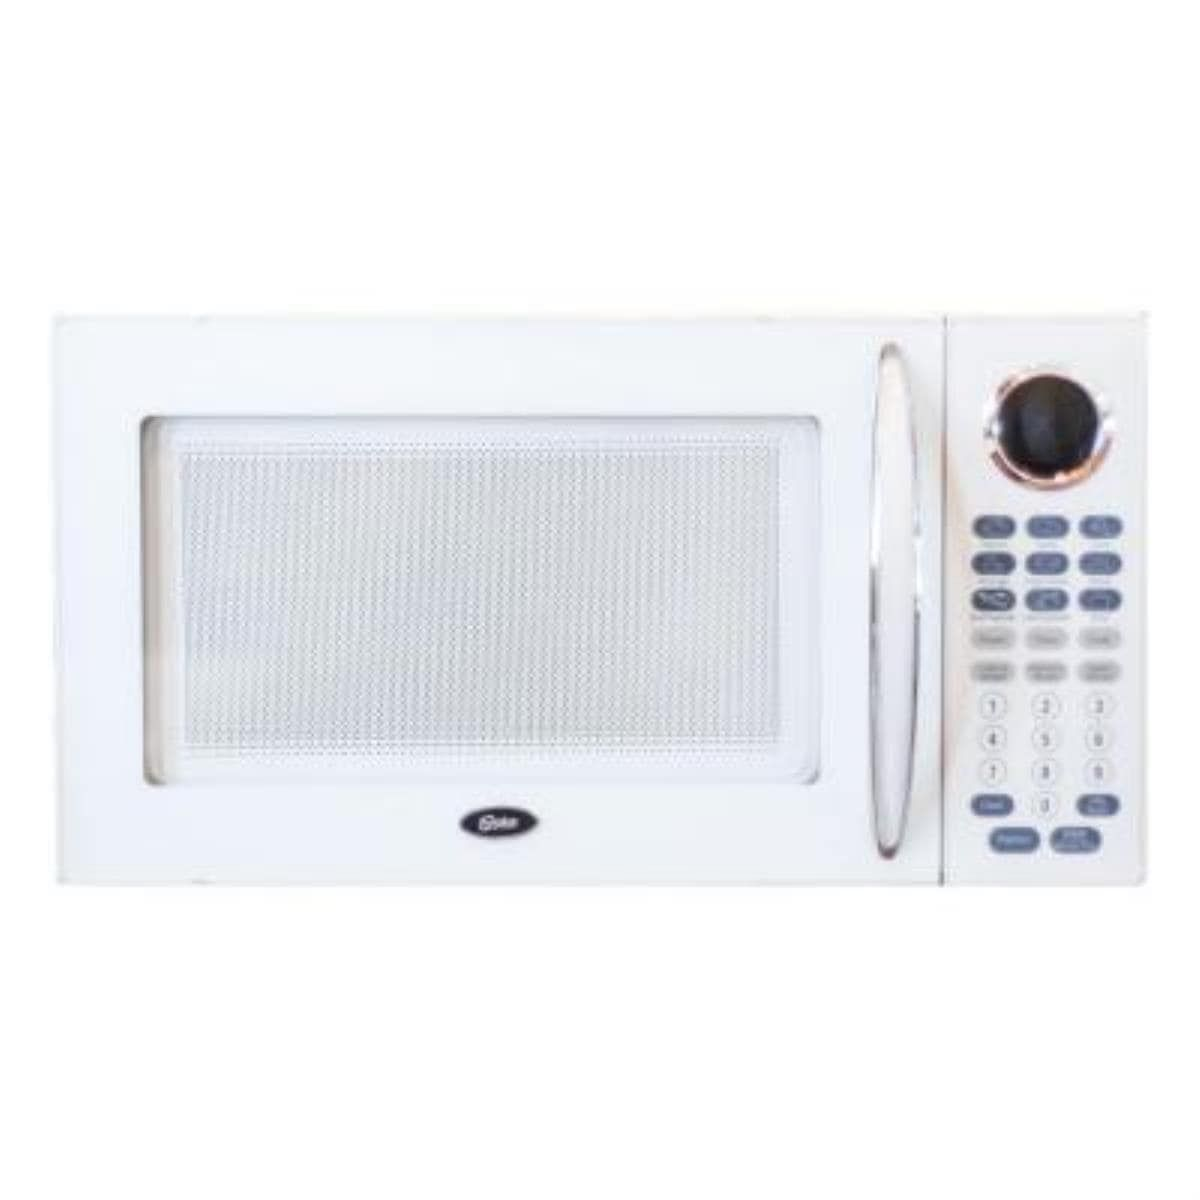 Oster Ogb81101 1 1 Cubic Foot Digital Microwave Oven White Products Countertop Microwave Oven Microwave Microwave Oven